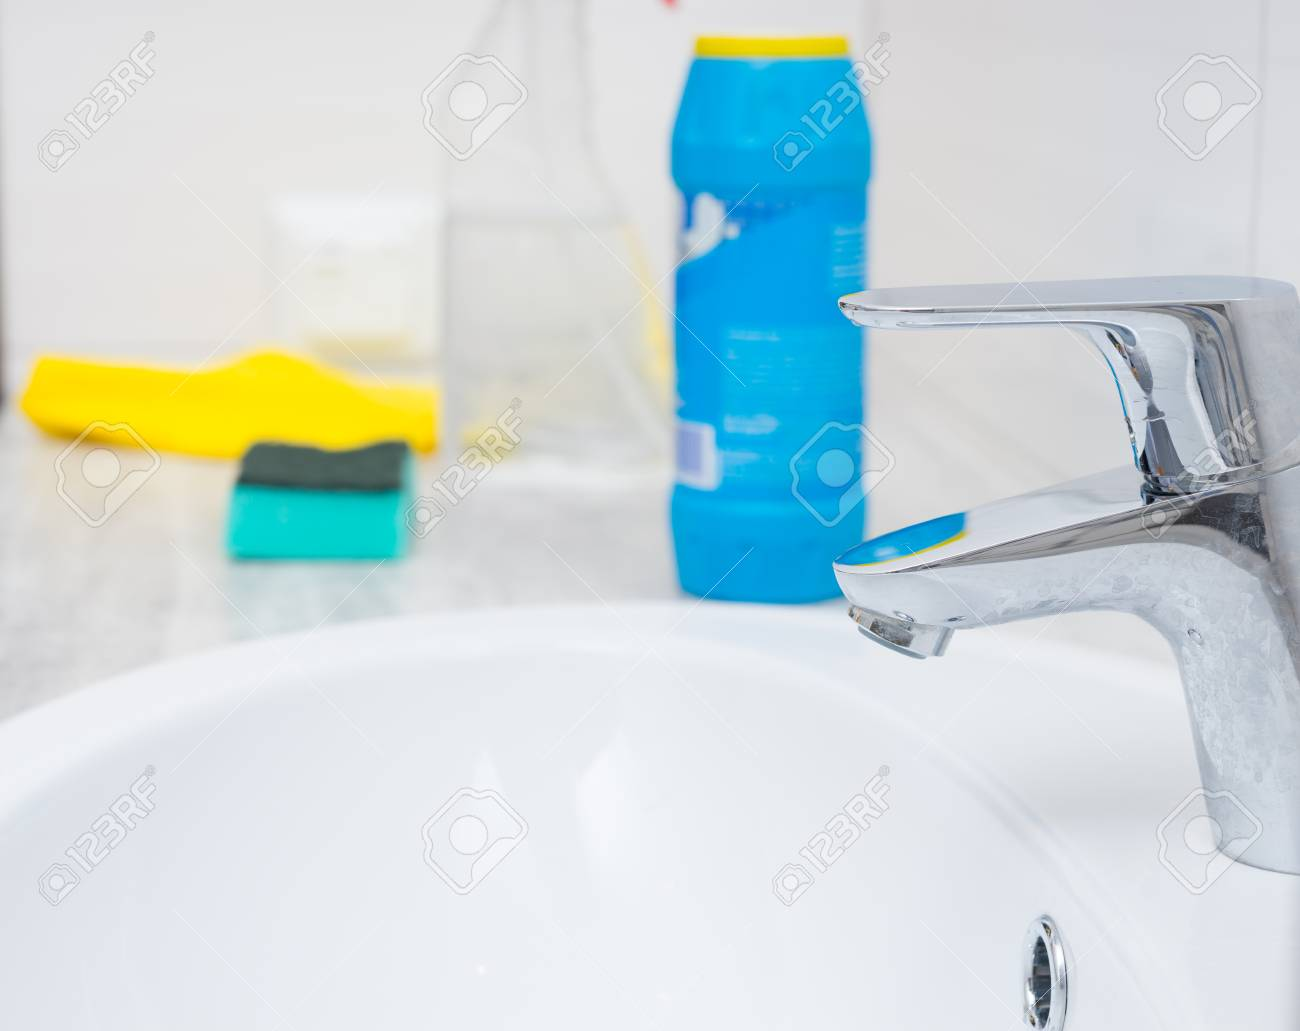 Close Up Of Chrome Sink Spigot And Cleaning Chemicals Bottle